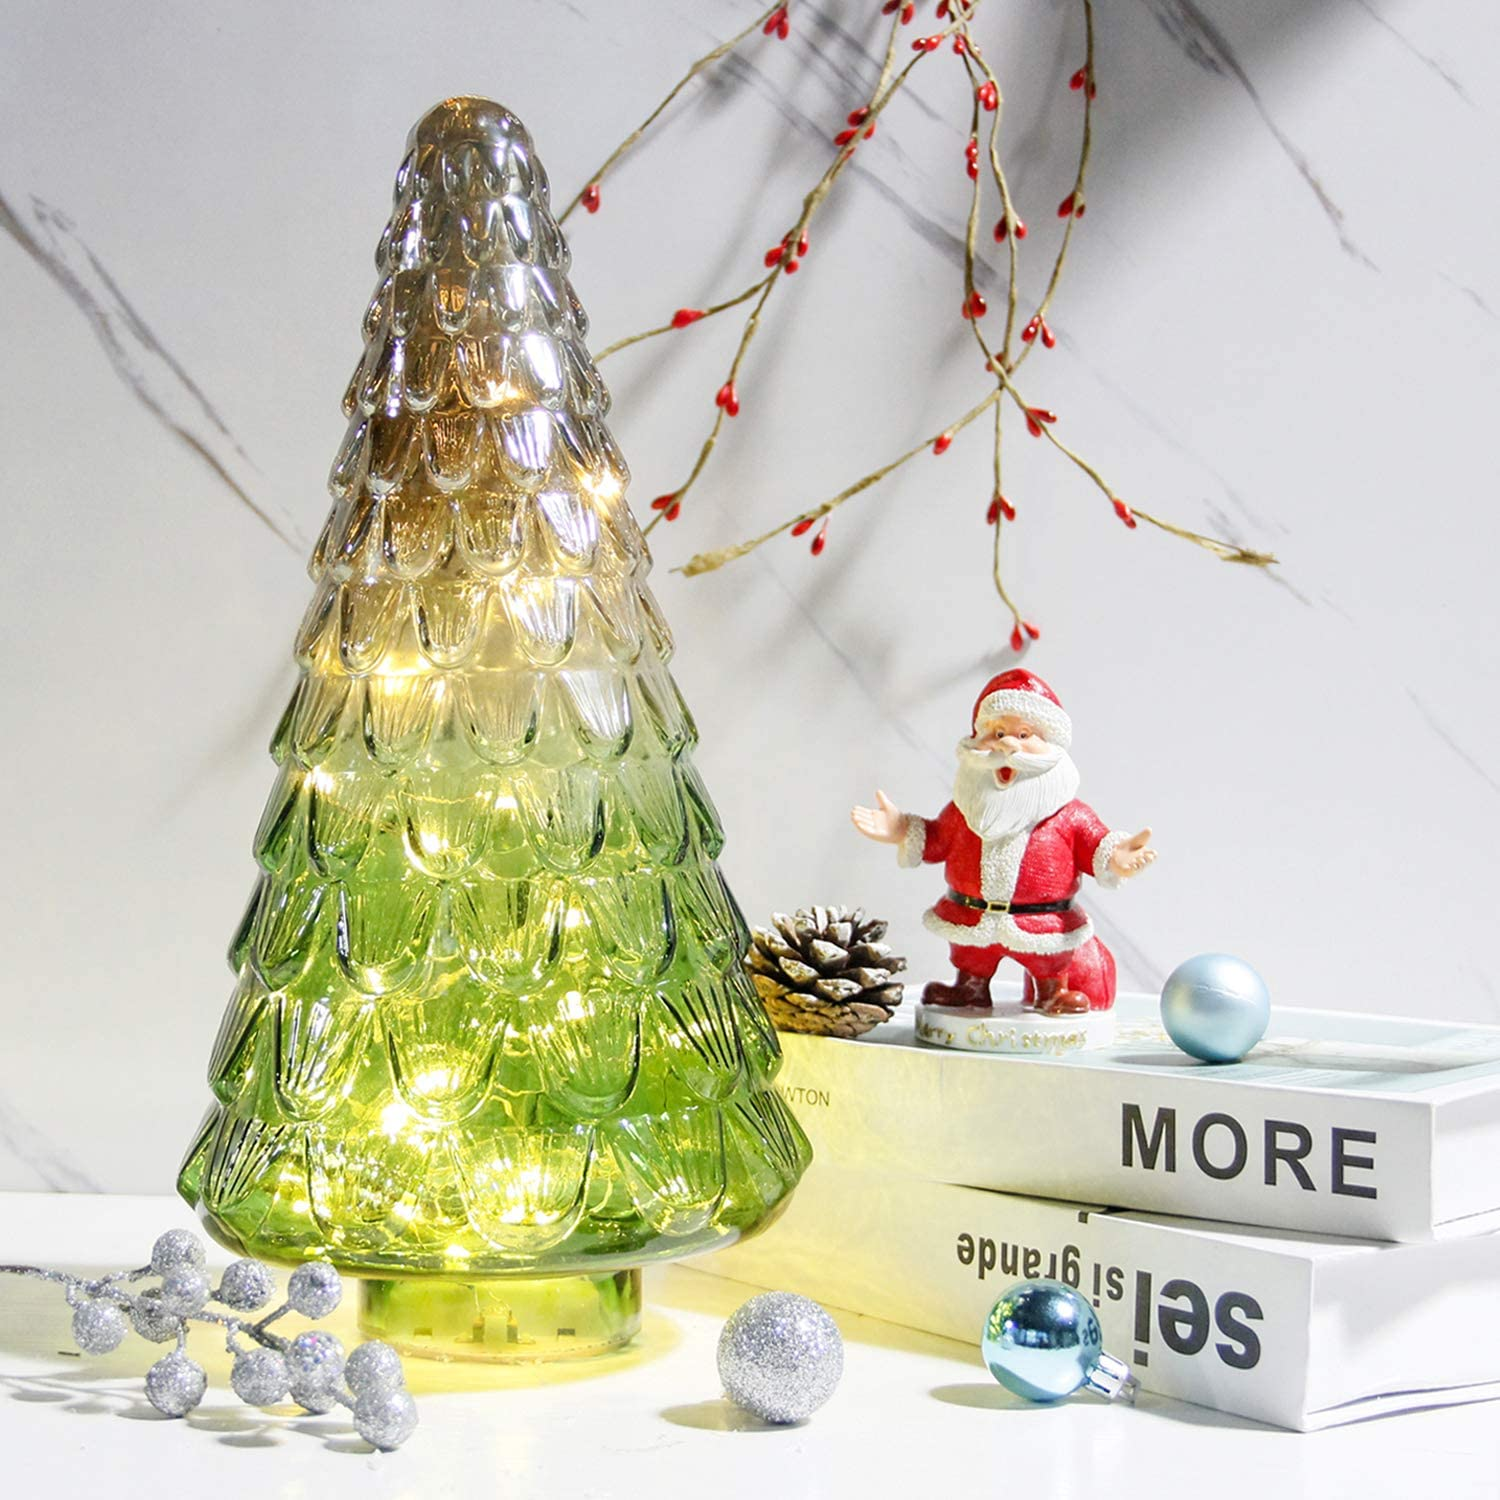 Amazon Com Mercury Glass Christmas Tree Lighted Xmas Tree Decorations Holiday Centerpiece Battery Operated Led With Timer Decorative For Tabletop Window Mantel Display Party Indoor Home Decor Green Home Kitchen